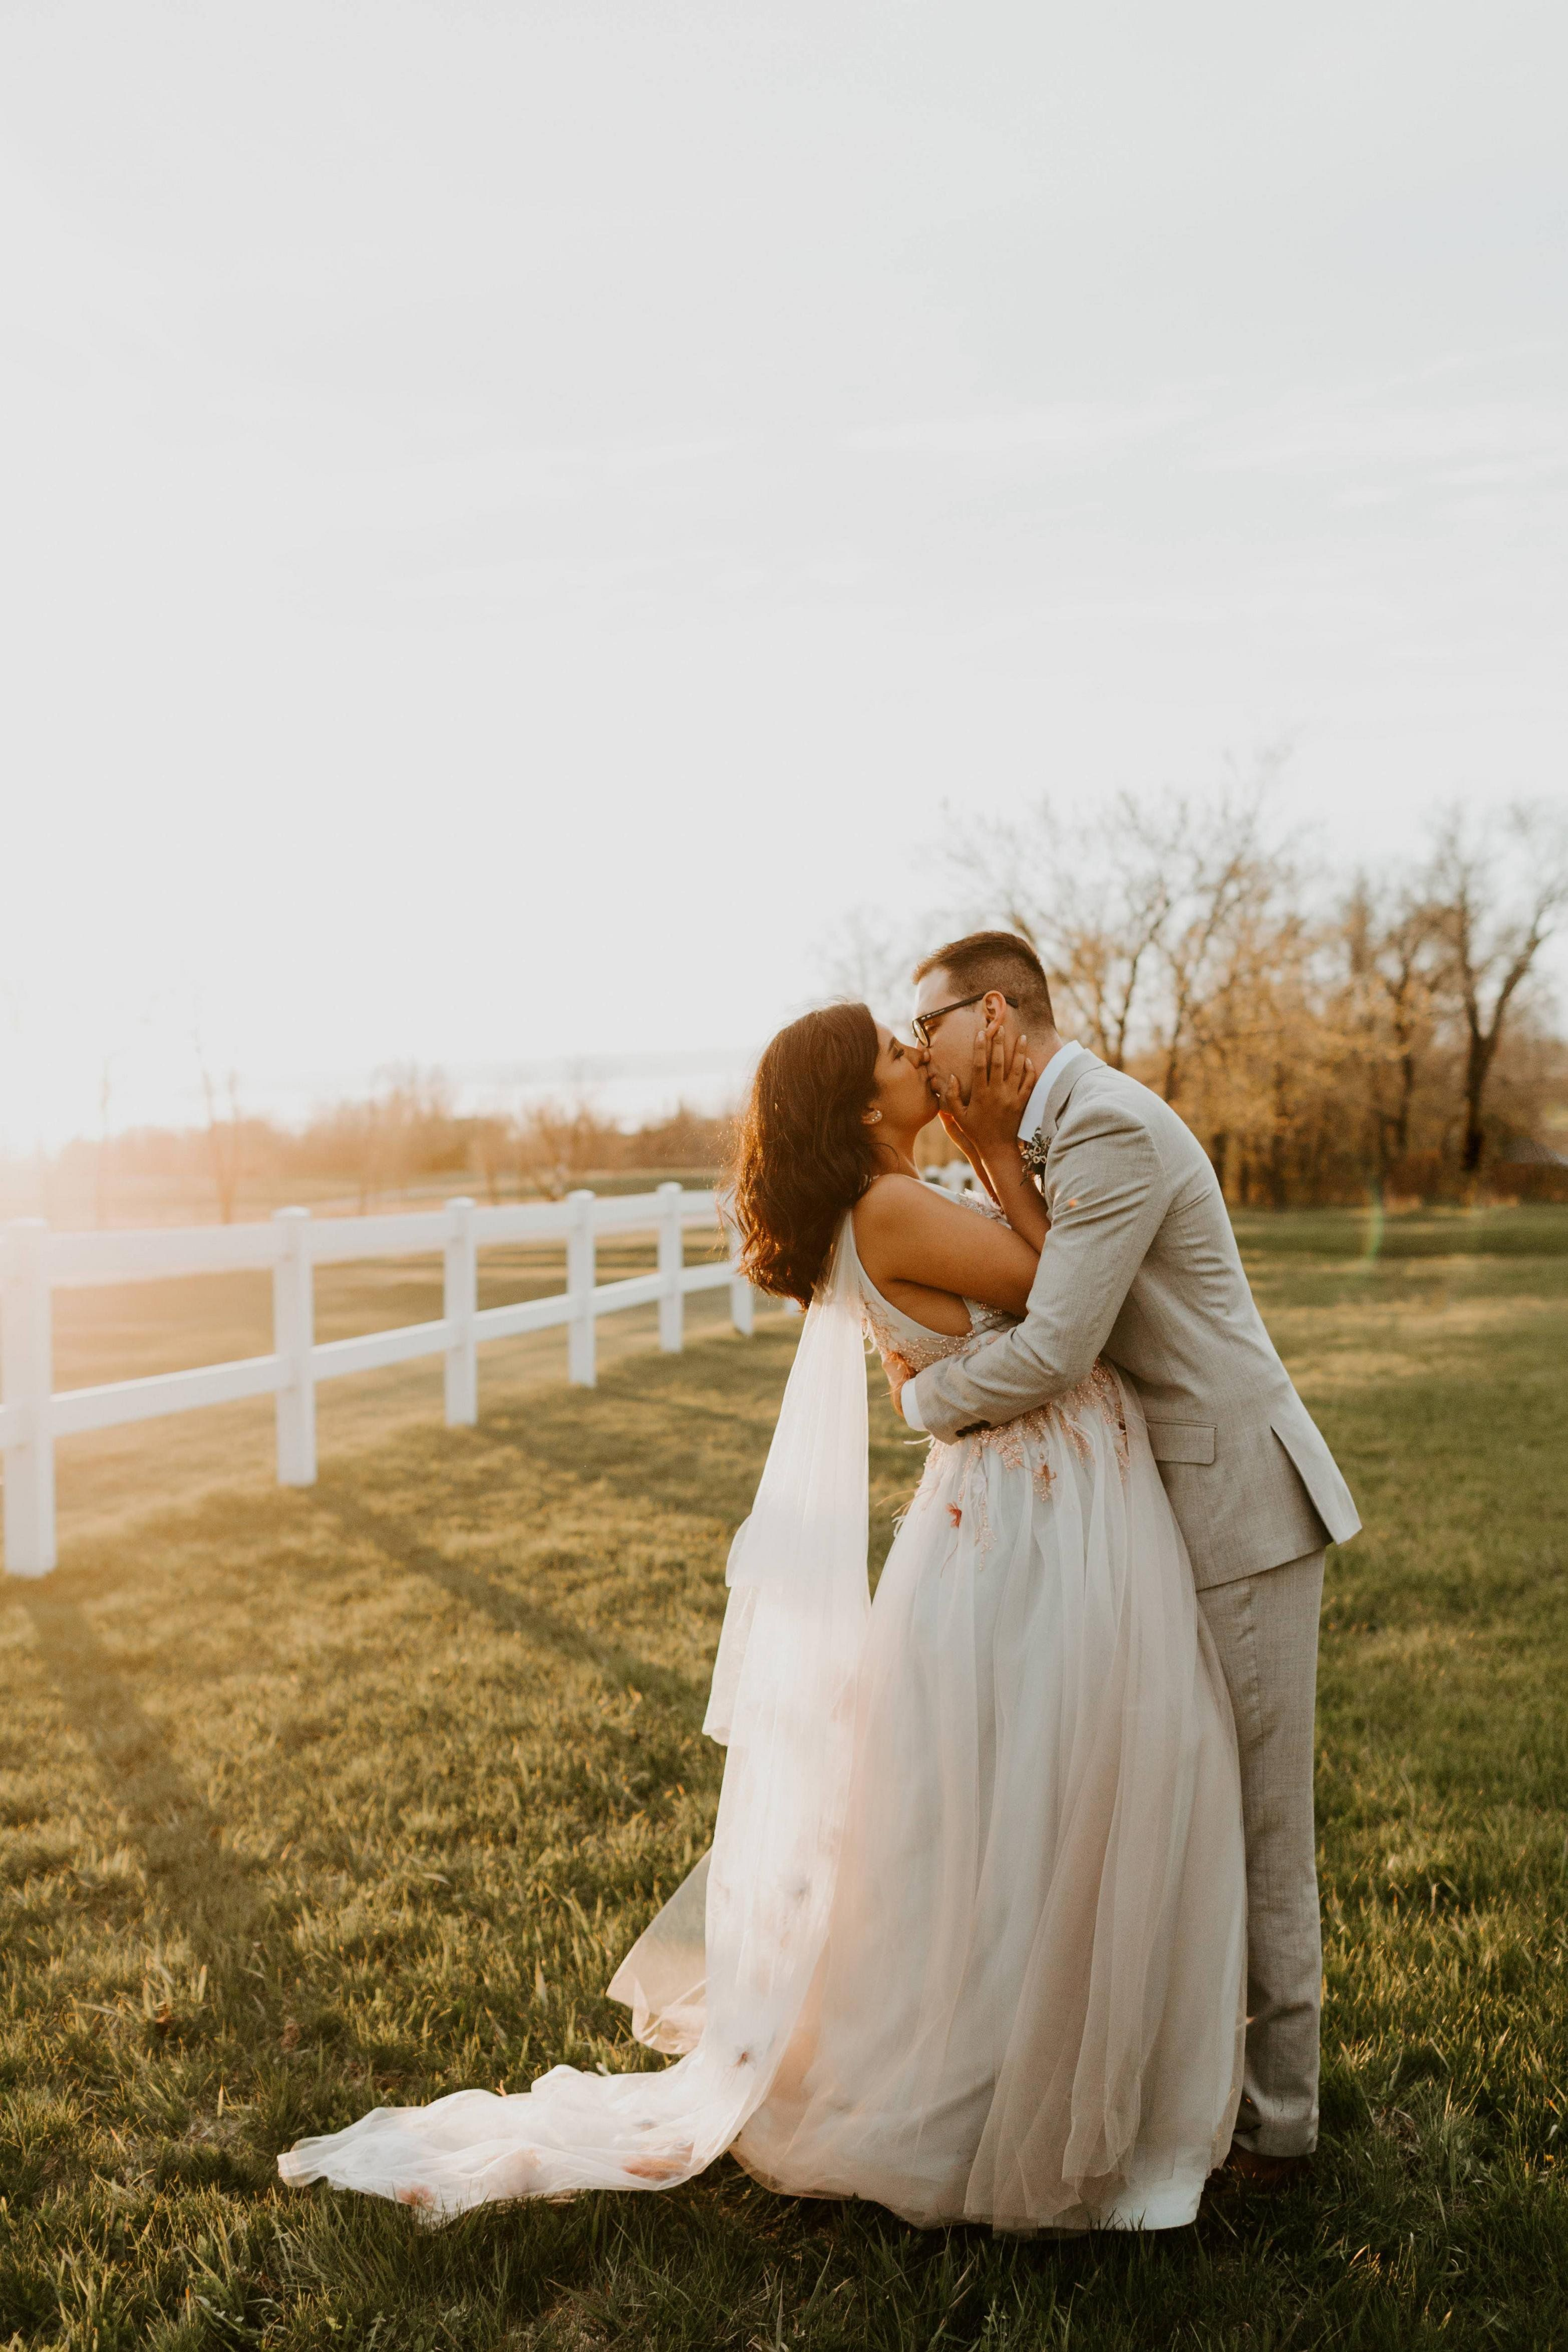 I Couldn T Decide On A Dress So I Decided To Go Custom Check More At Https Www Evmore Net Wedding Planning Timeline Local Design Wedding Planning Checklist